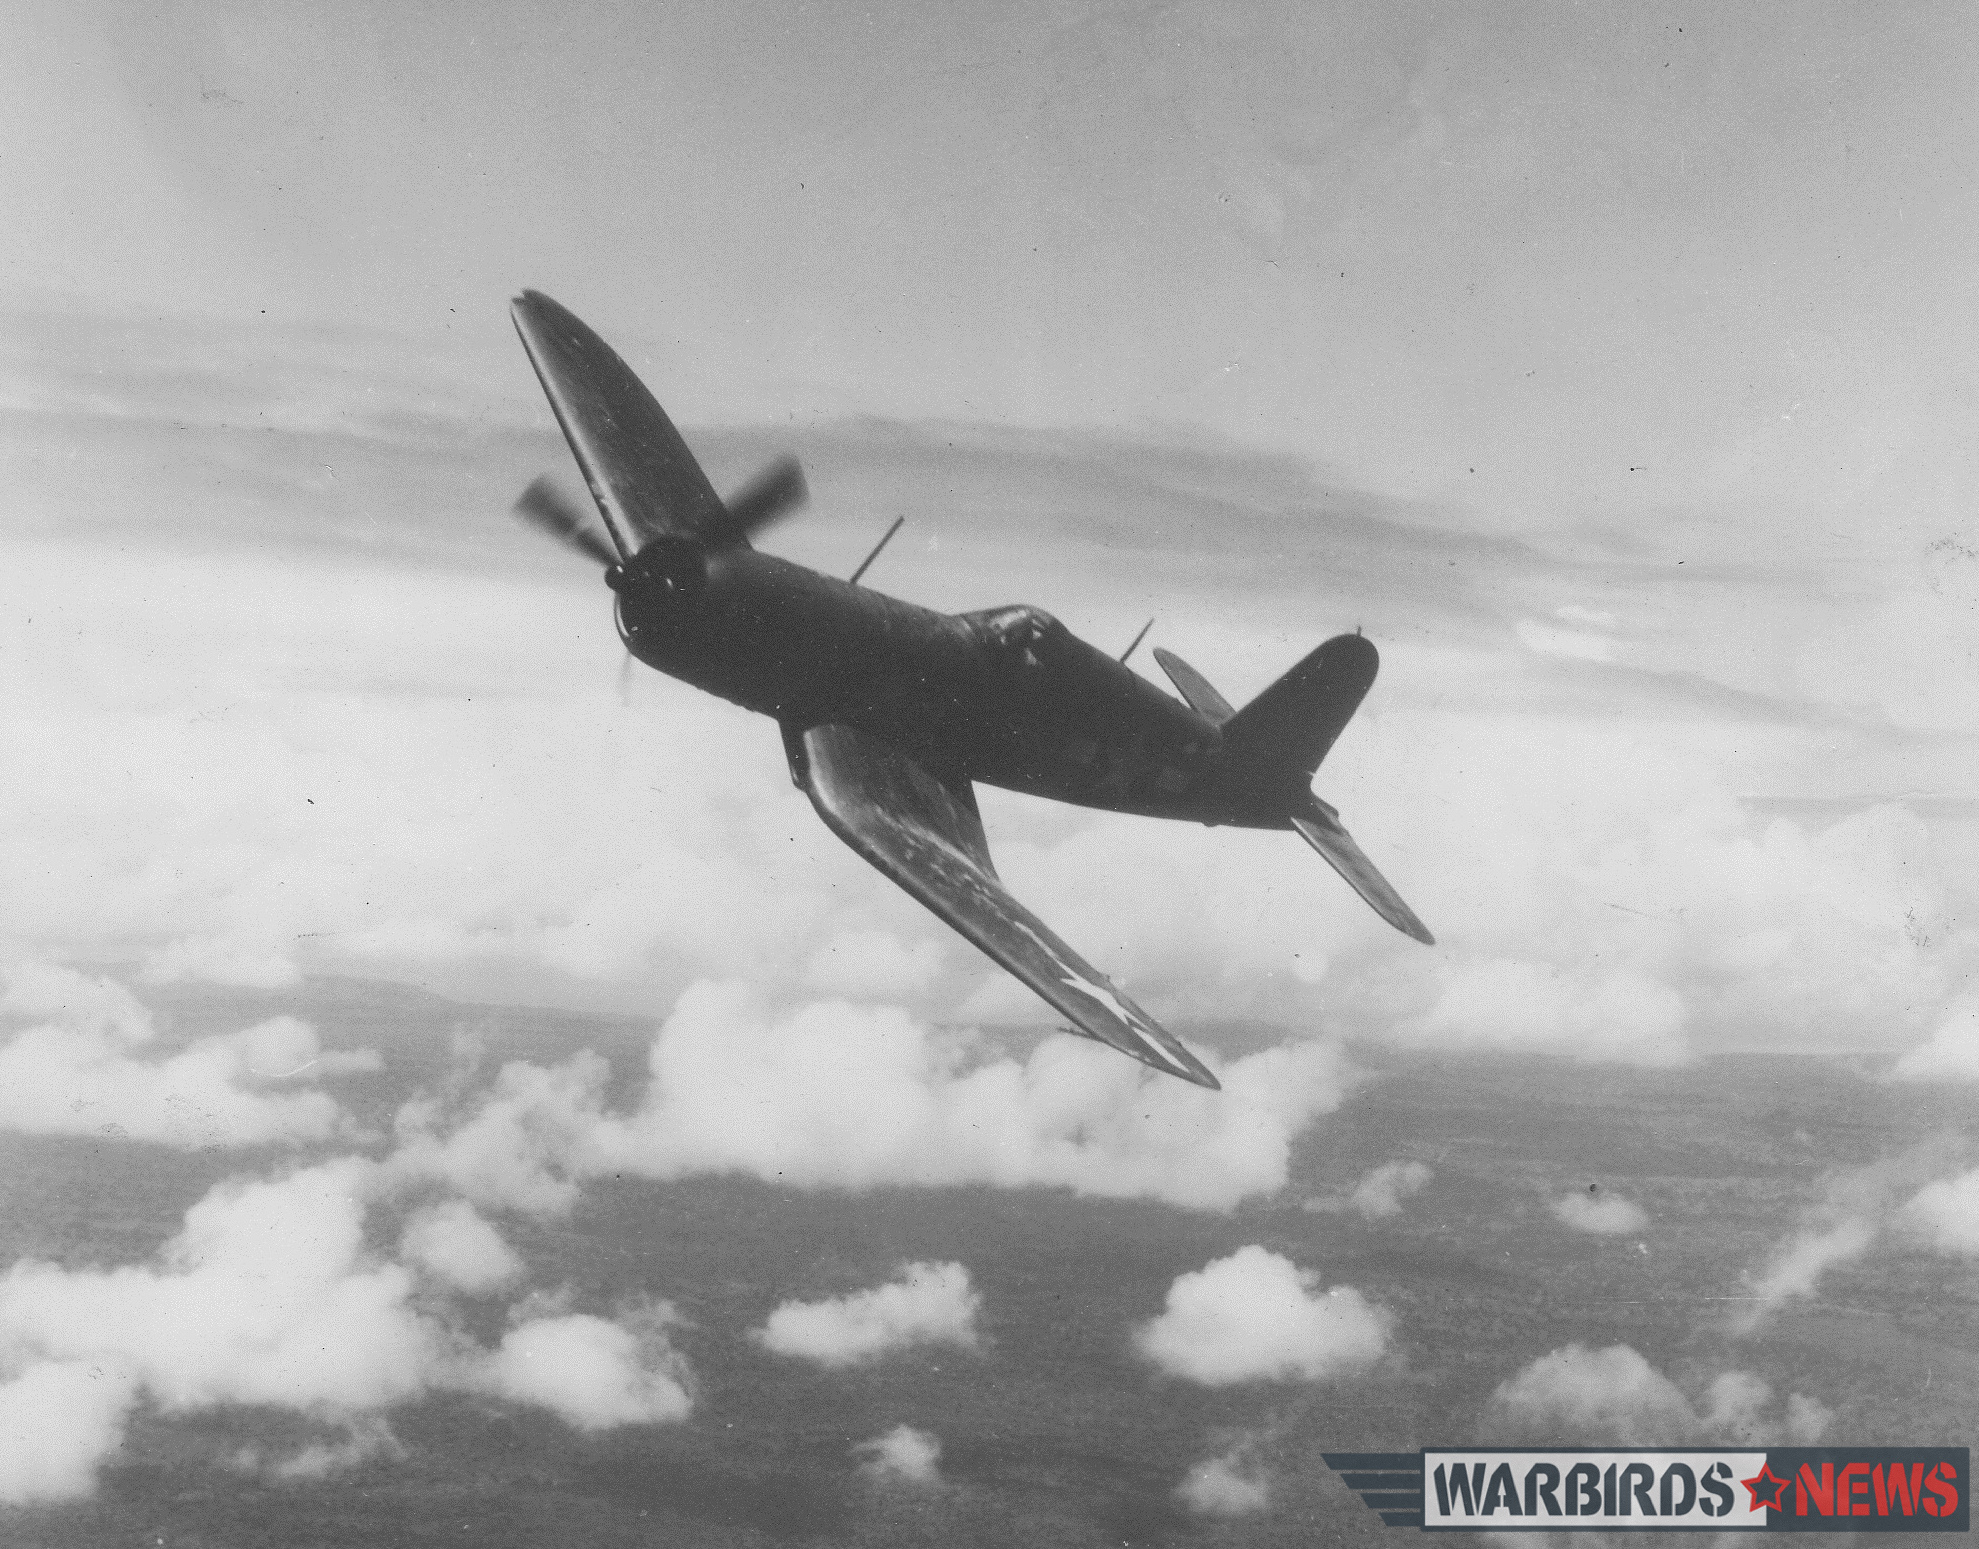 With its distinctive gull wing and long cylindrical fuselage, the F4U Corsair had the visual appeal and panache of a thoroughbred race horse. Combined with its high speed, superb gun package, ruggedness, and external armament options, the Corsair was arguably the best single-engine fighter in the Pacific theater. Many survived combat encounters with extensive damage, yet brought their pilots safely back to base. Photo credit: Bruce Gamble via Frank Walton